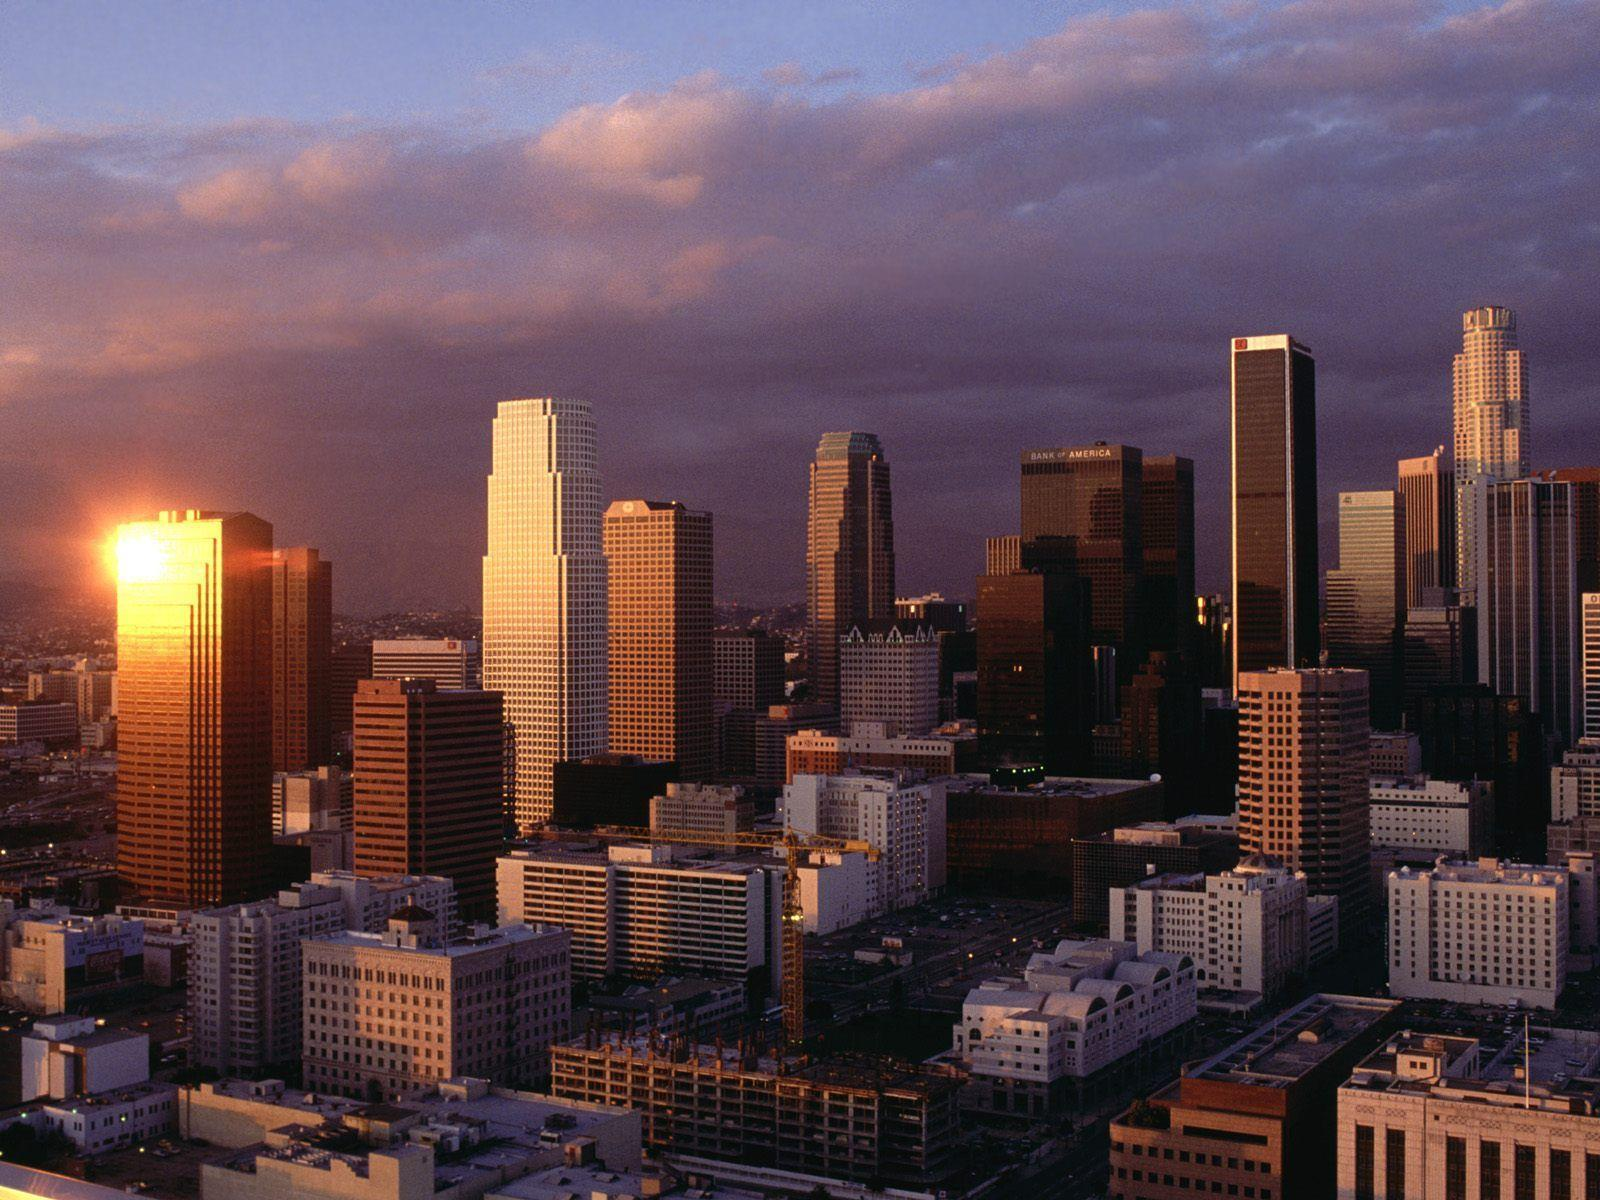 LA Wallpapers: Los Angeles Wallpaper Available For Download In HD